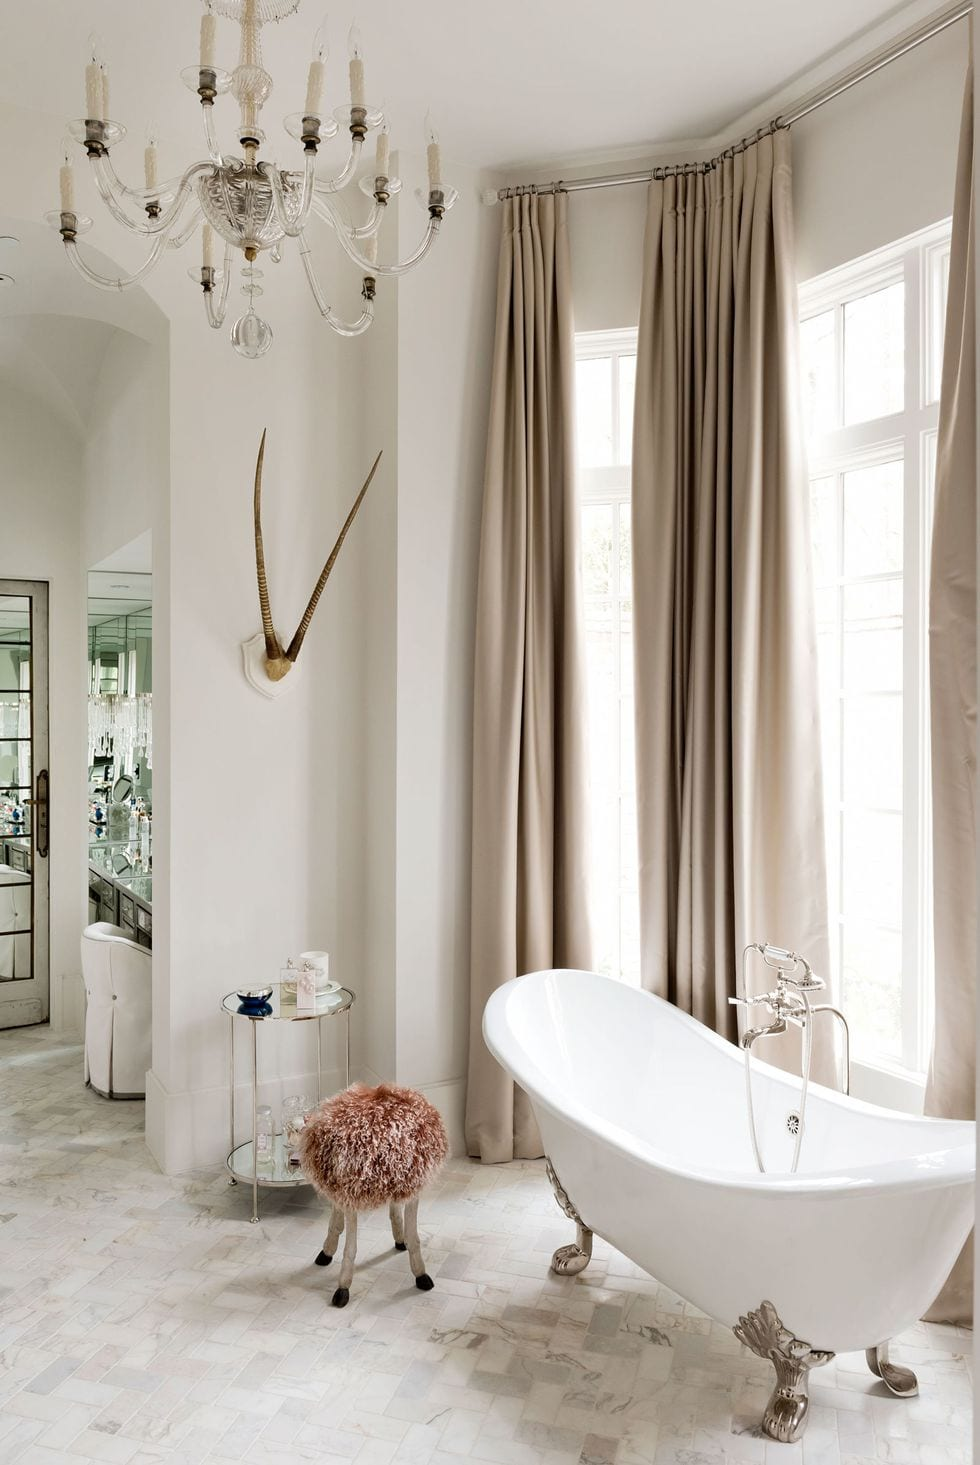 Boho style bathtub design ideas